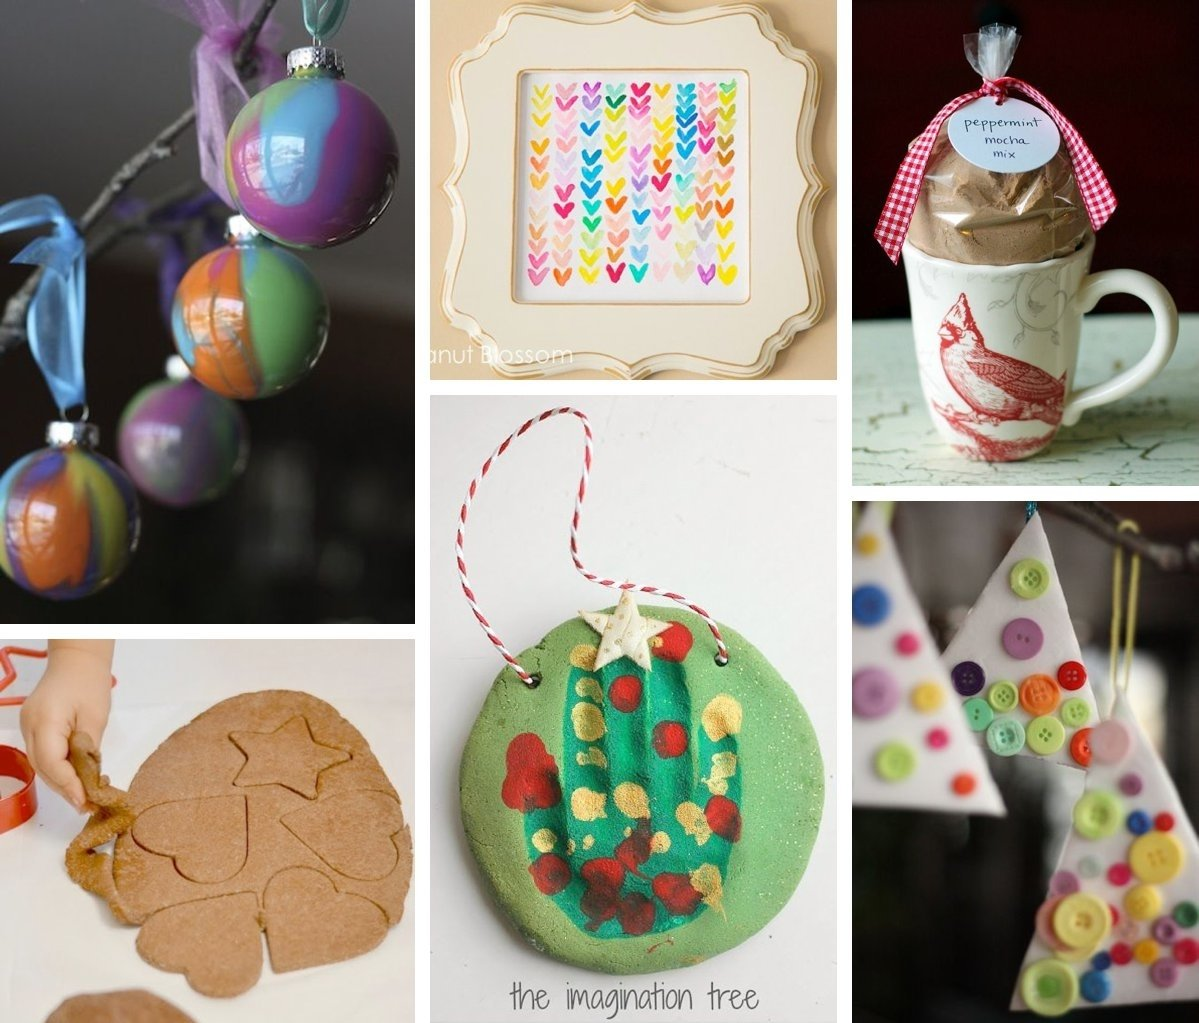 10 Ideal Christmas Ideas For Kids To Make diy holiday gifts kids can help make 2